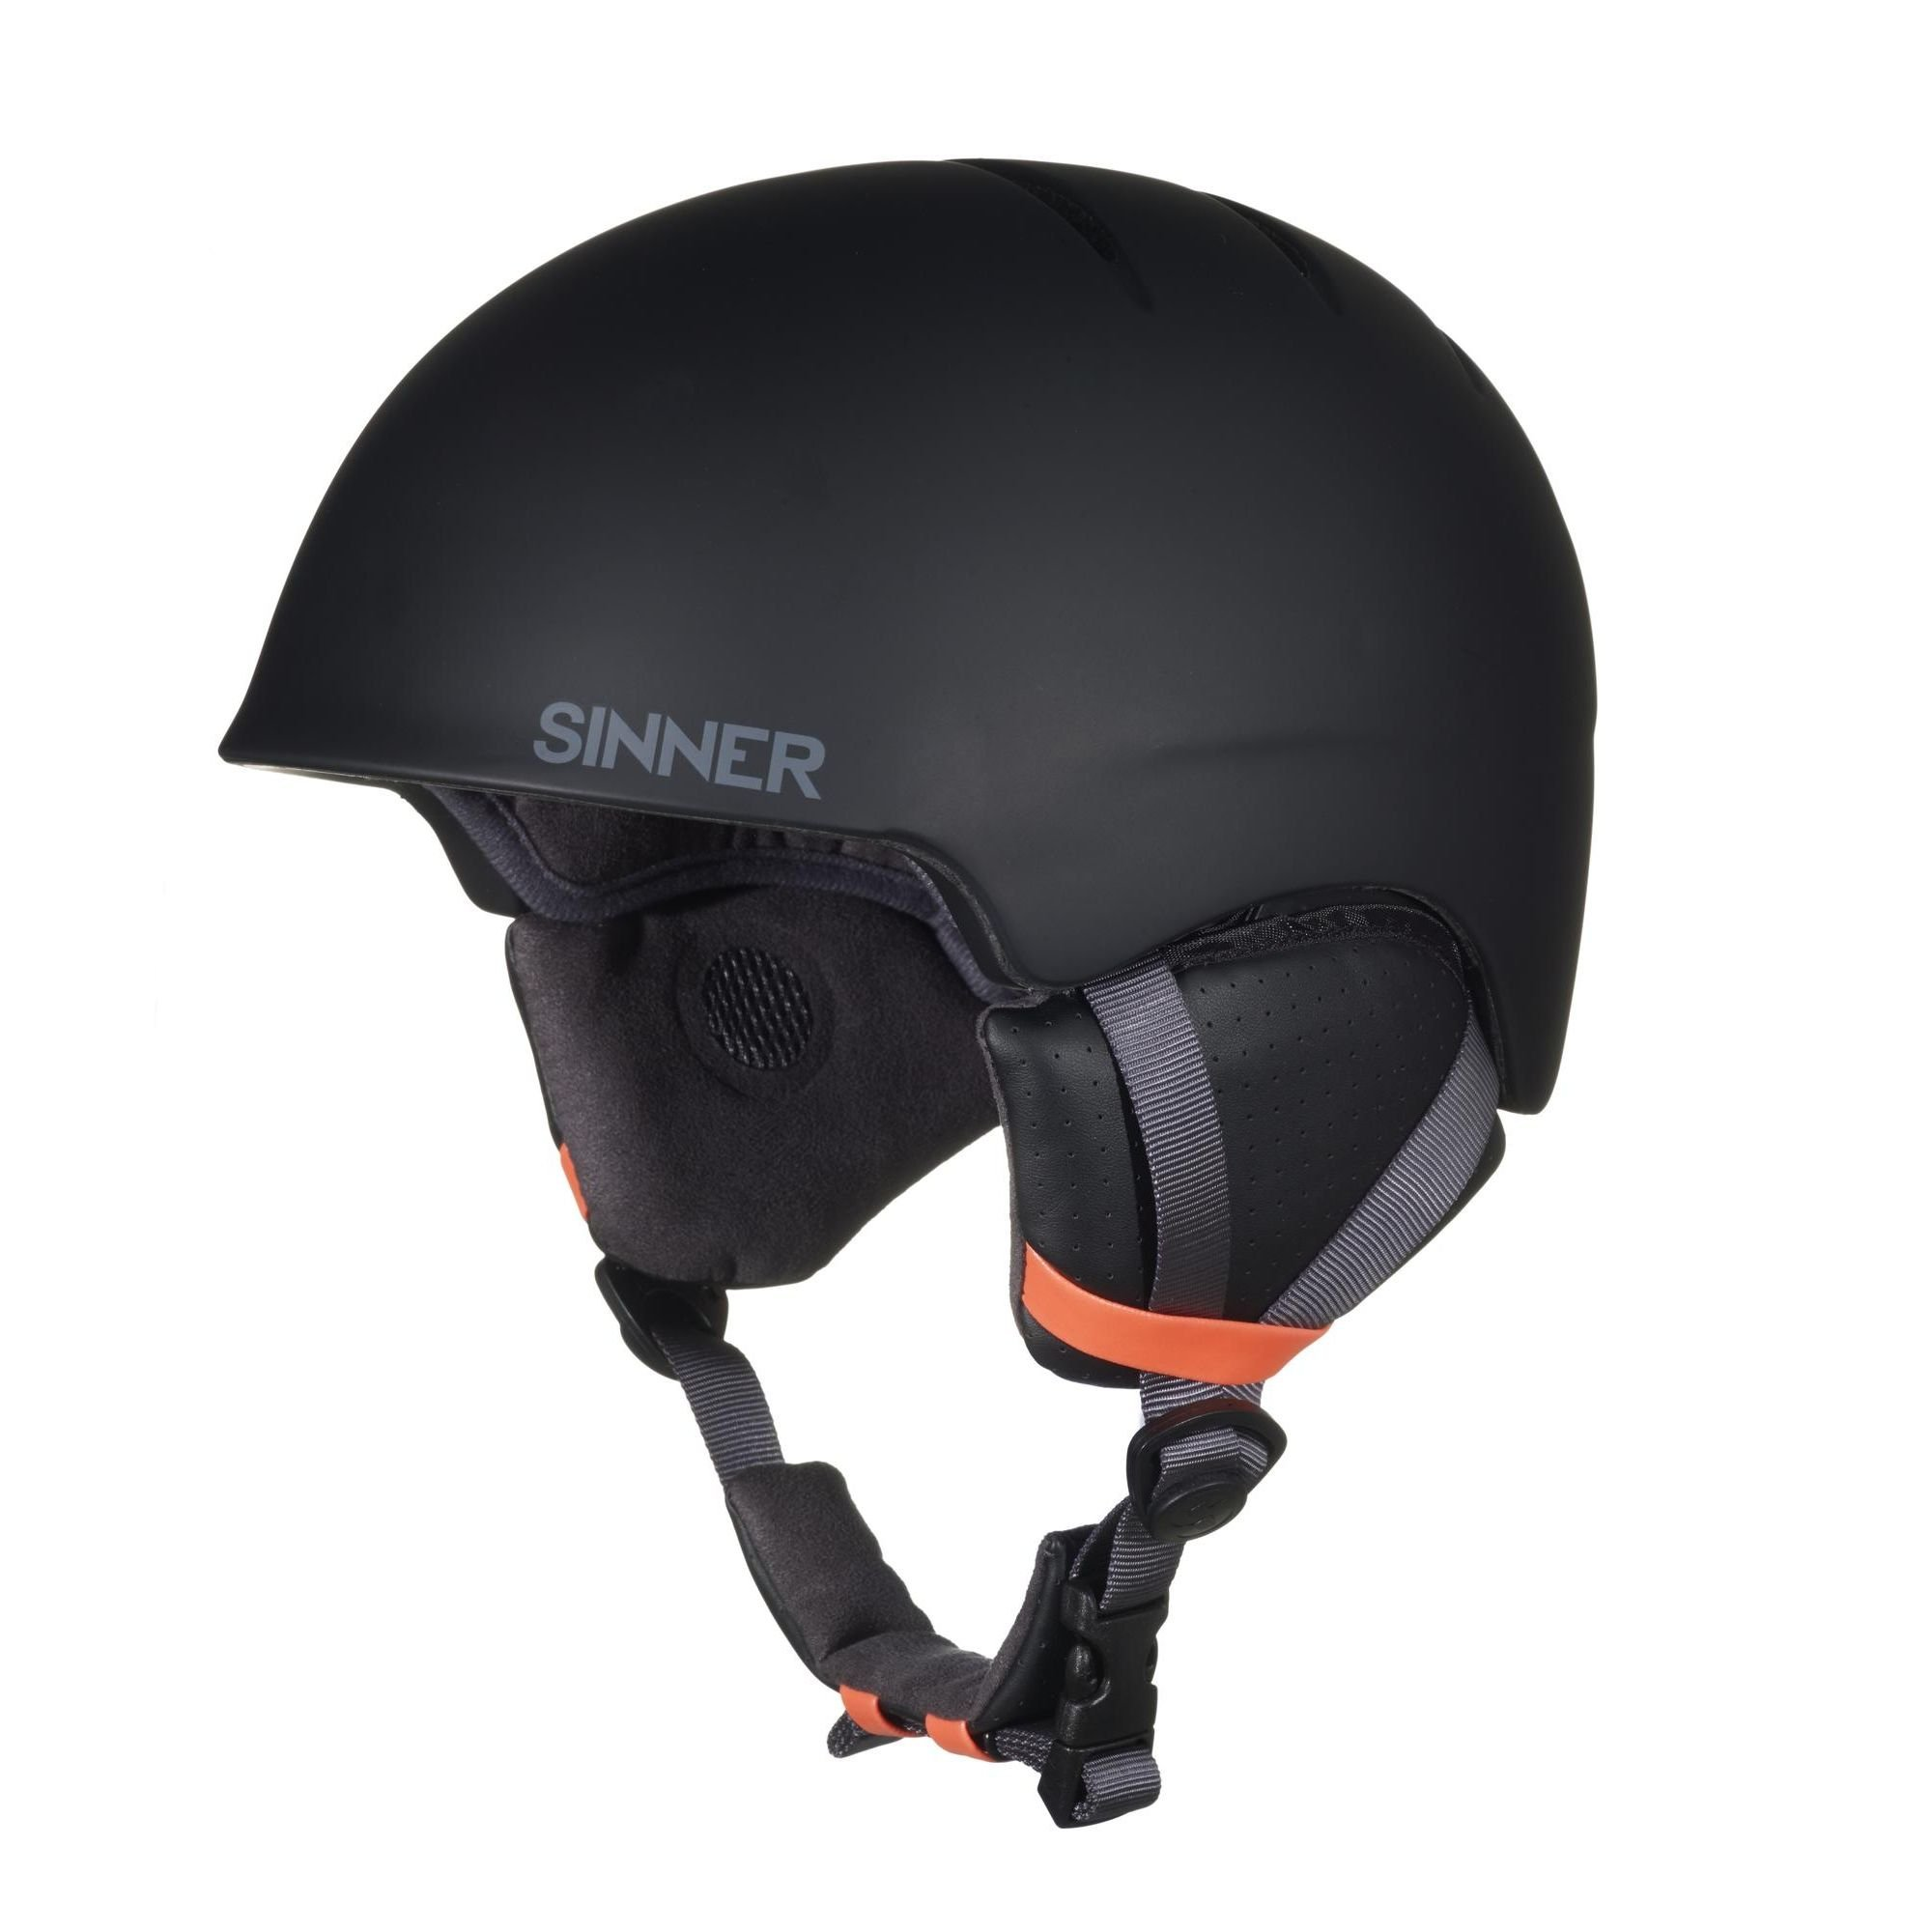 SINNER LOST TRAIL SKIHELM ZWART